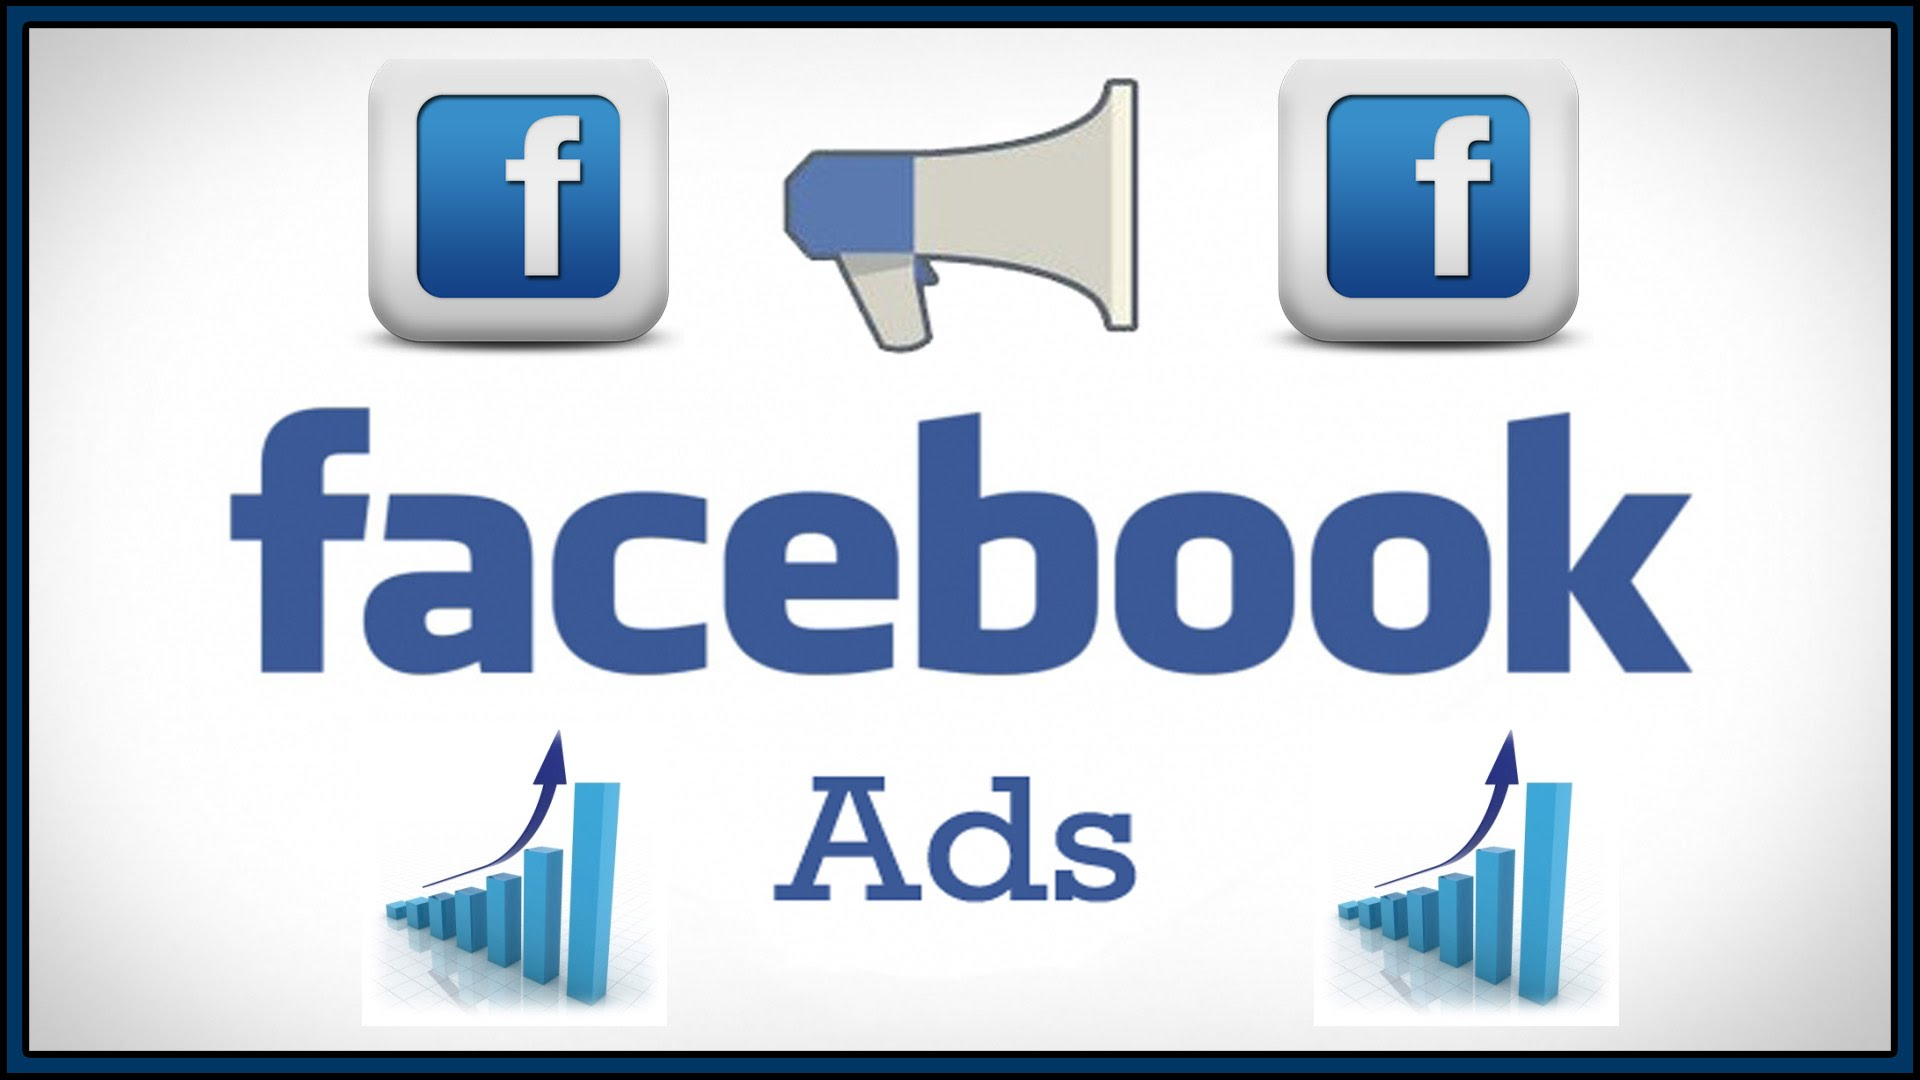 PERCHE' UTILIZZARE FACEBOOK ADS?